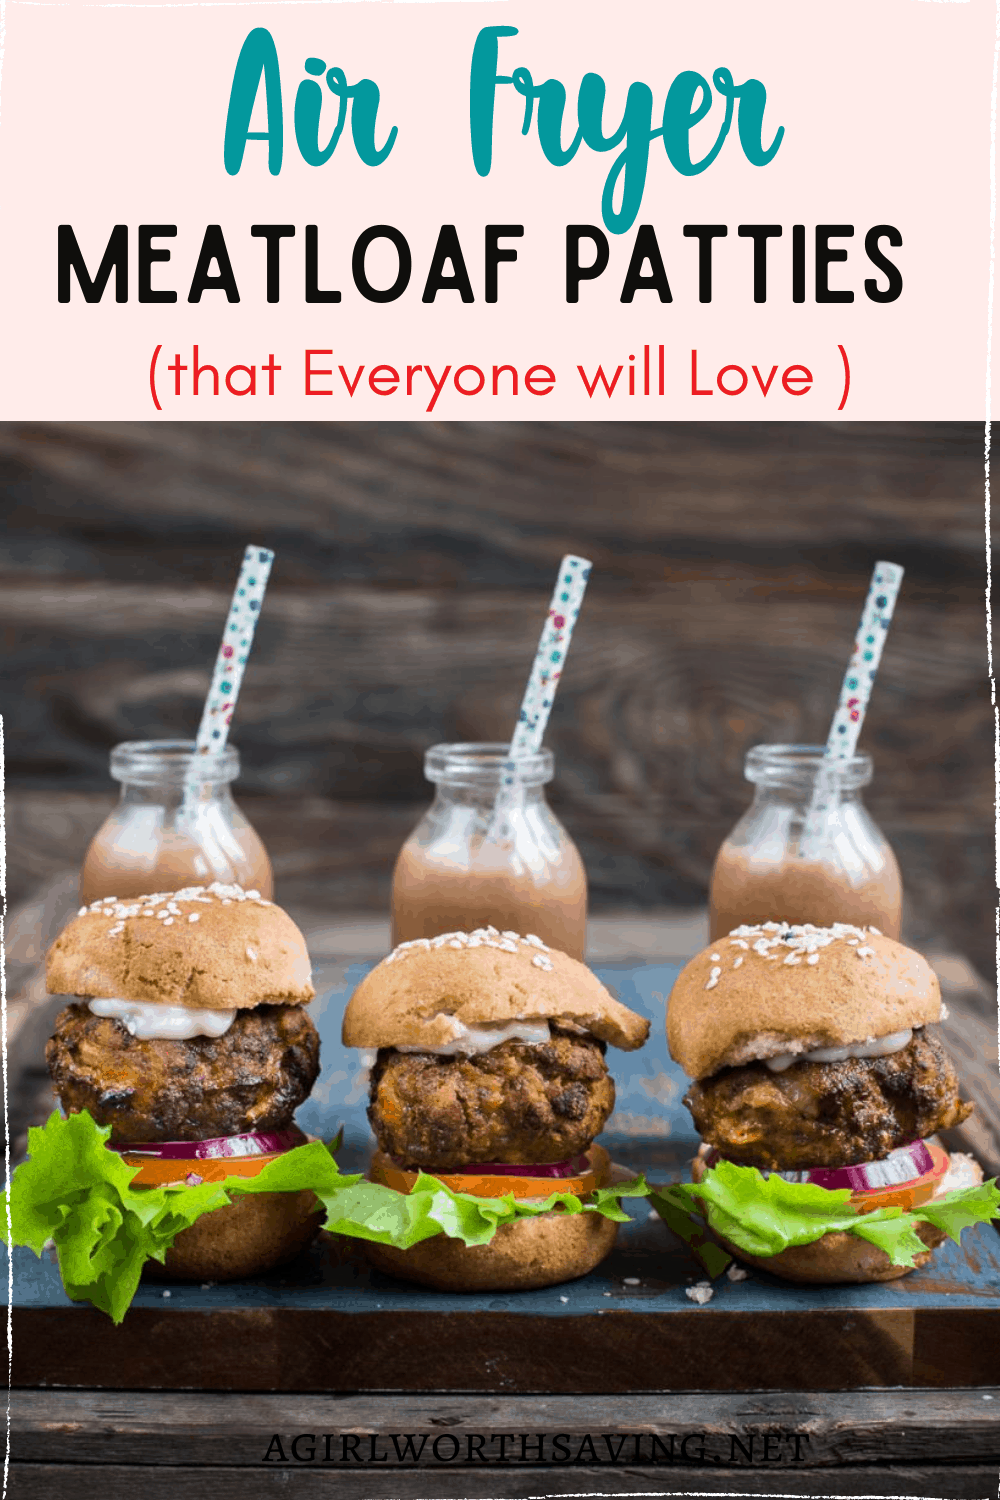 If you're looking for a great meatloaf recipe, this Air Fryer Meatloaf recipe is perfect. Not only are the ingredients simple and easy to use but the flavor is truly unlike anything you've tried. This is one of my top comfort food dishes that I can't wait to share these delicious air fryer meatloaf patties with all of you.